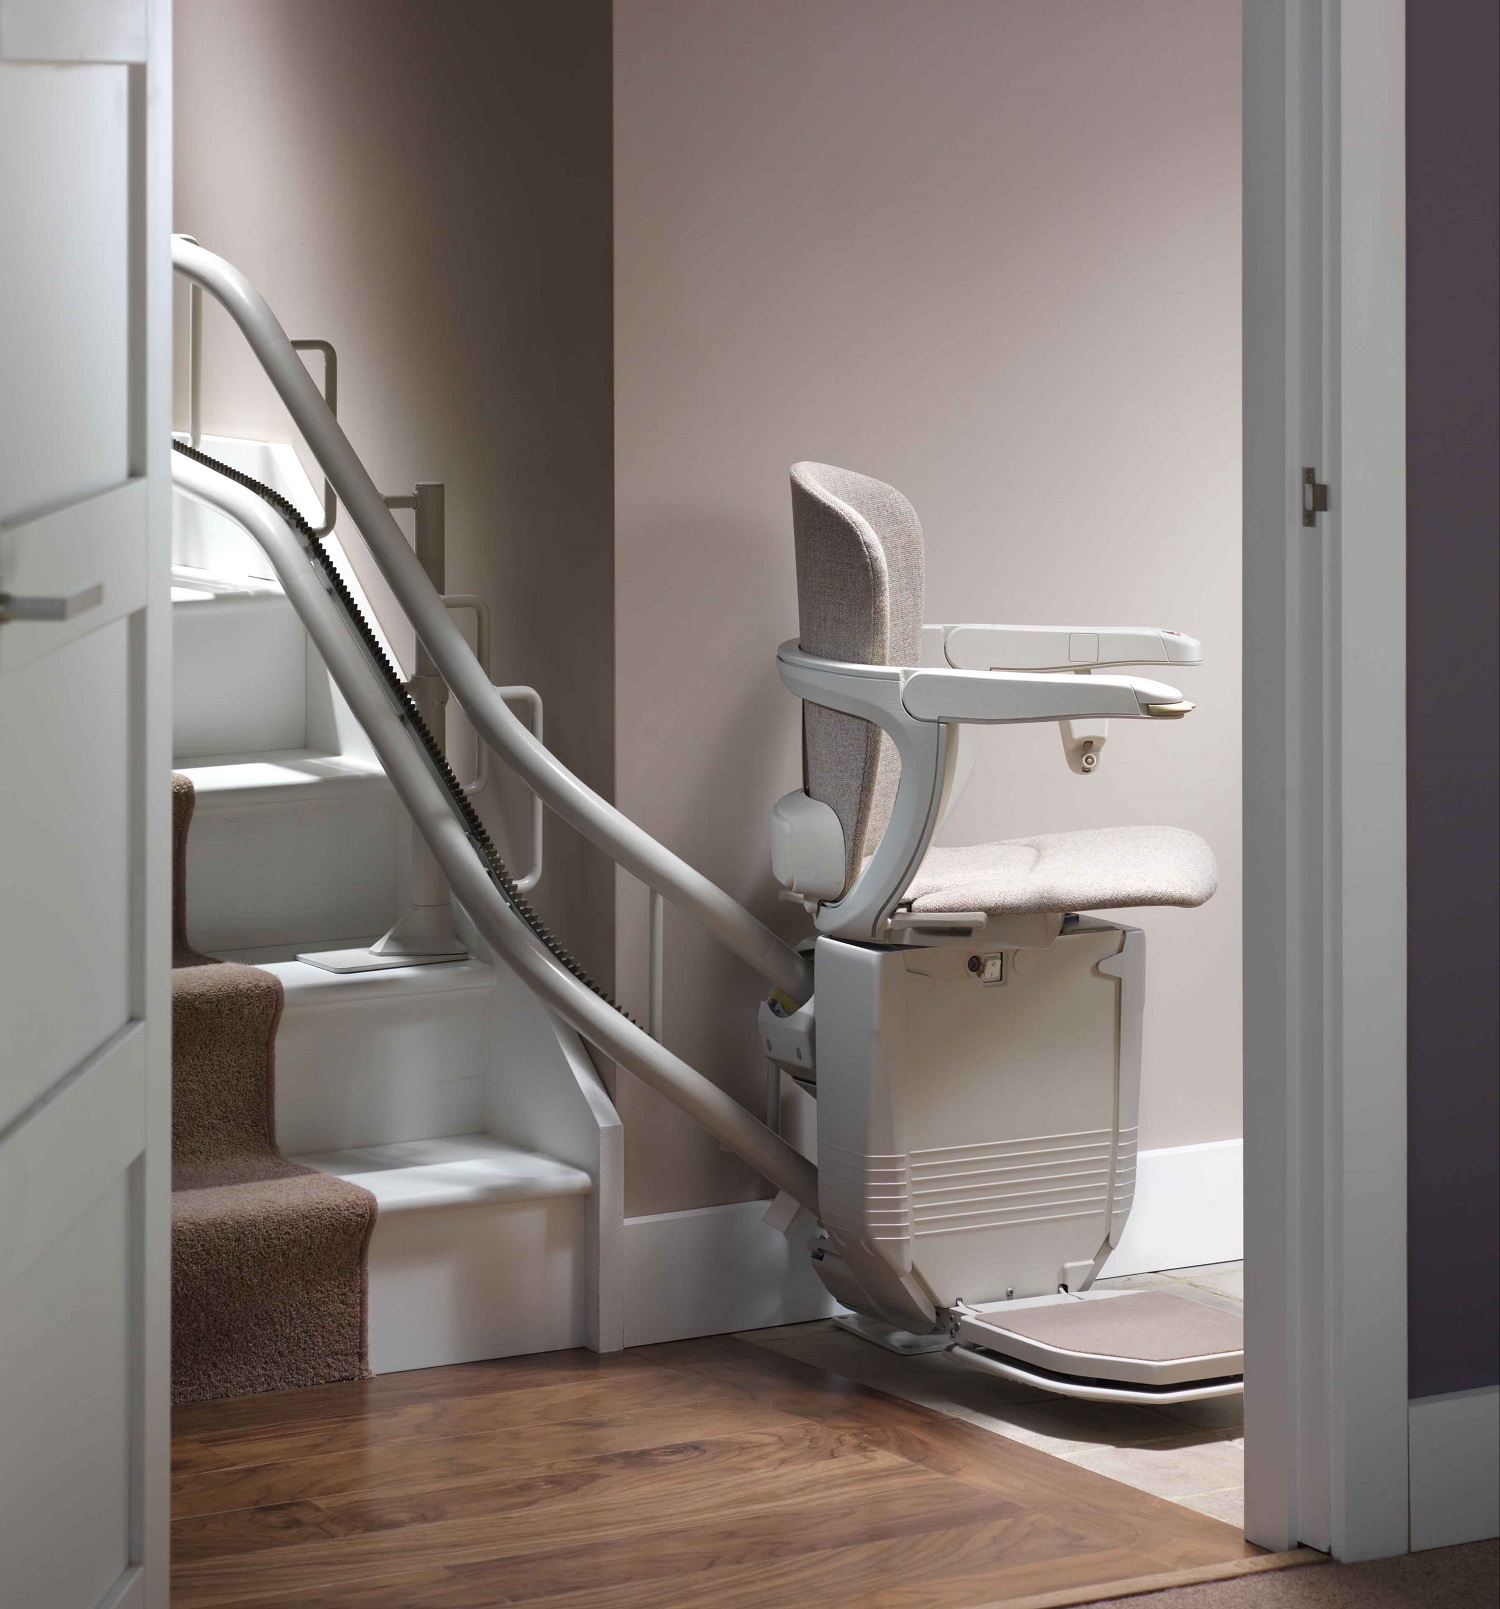 Stannah 260 Curved Stairlifts